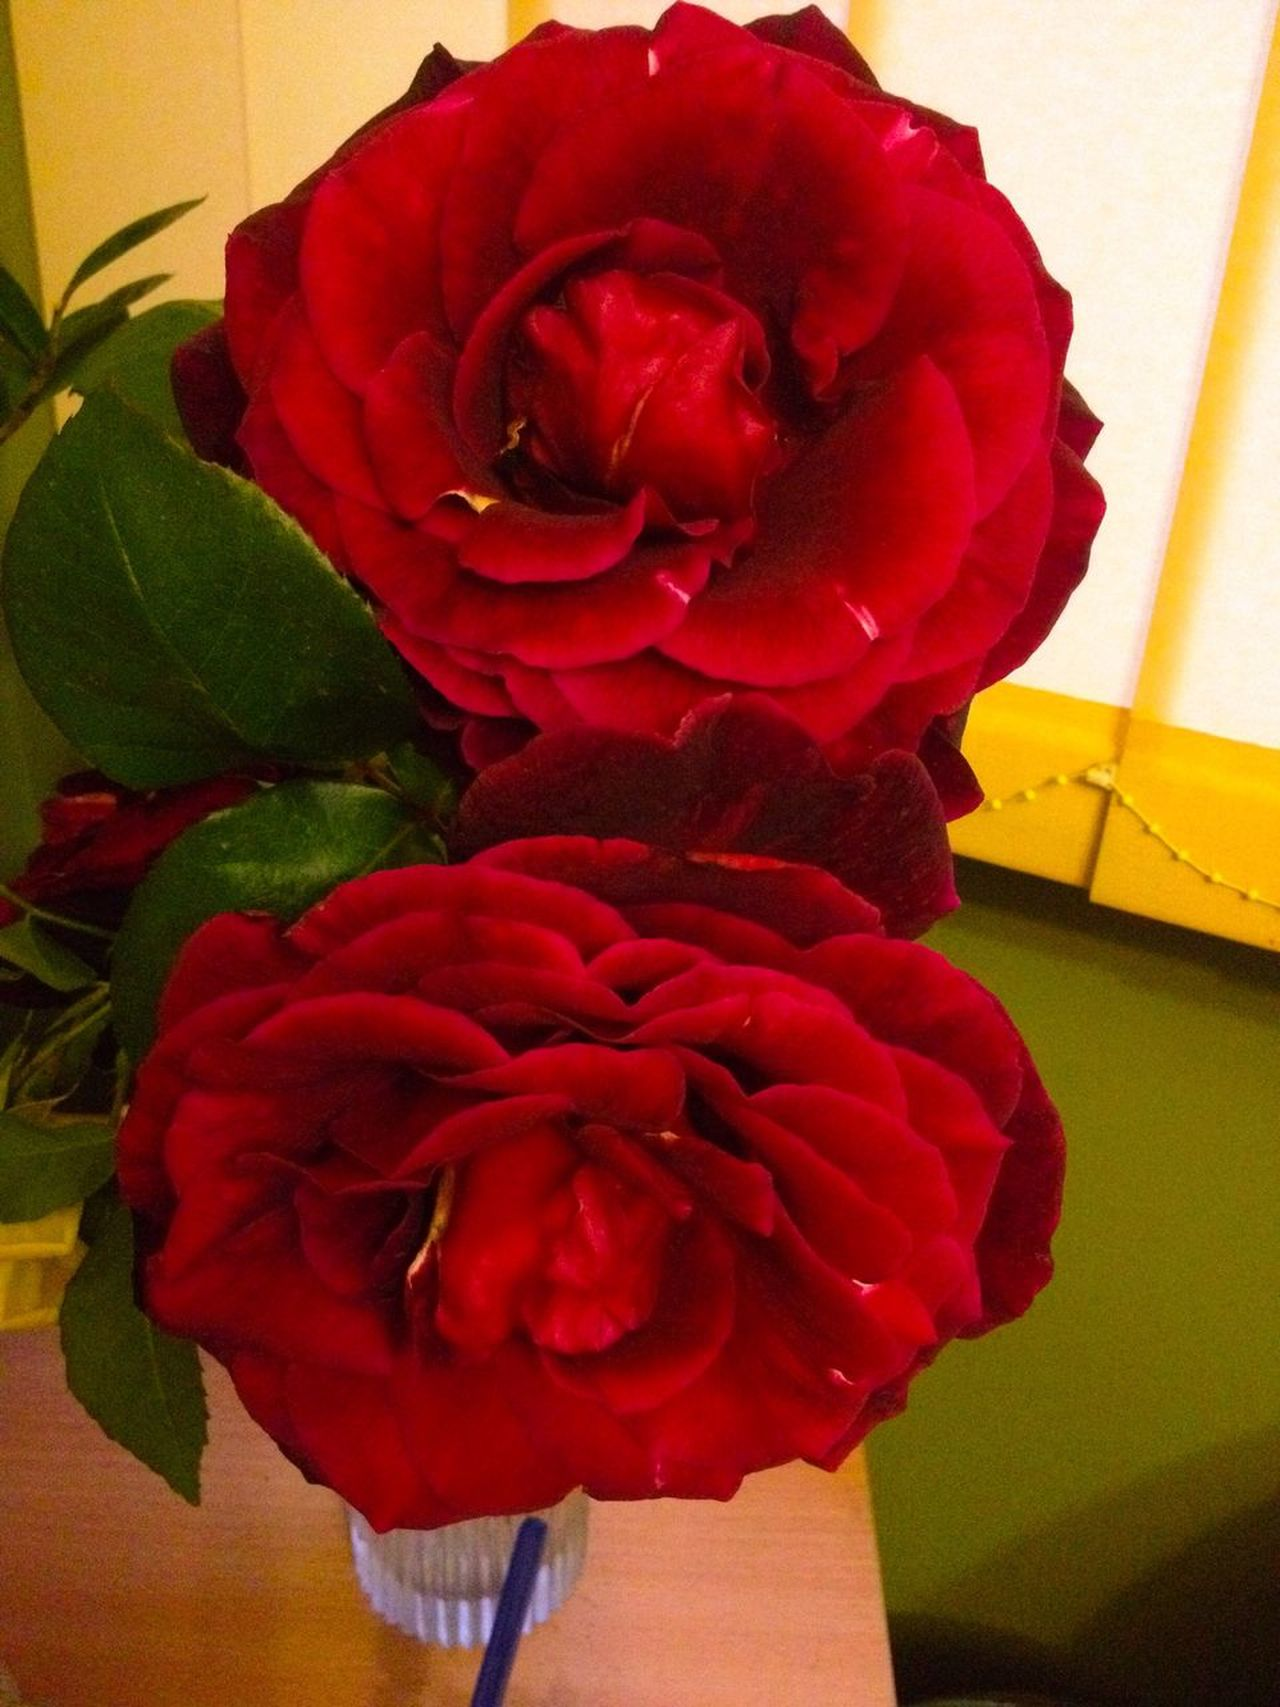 Roses Vase Bouquet Of Roses Bouquet Flowers Red Roses Red Rose♥ Roses Blossom